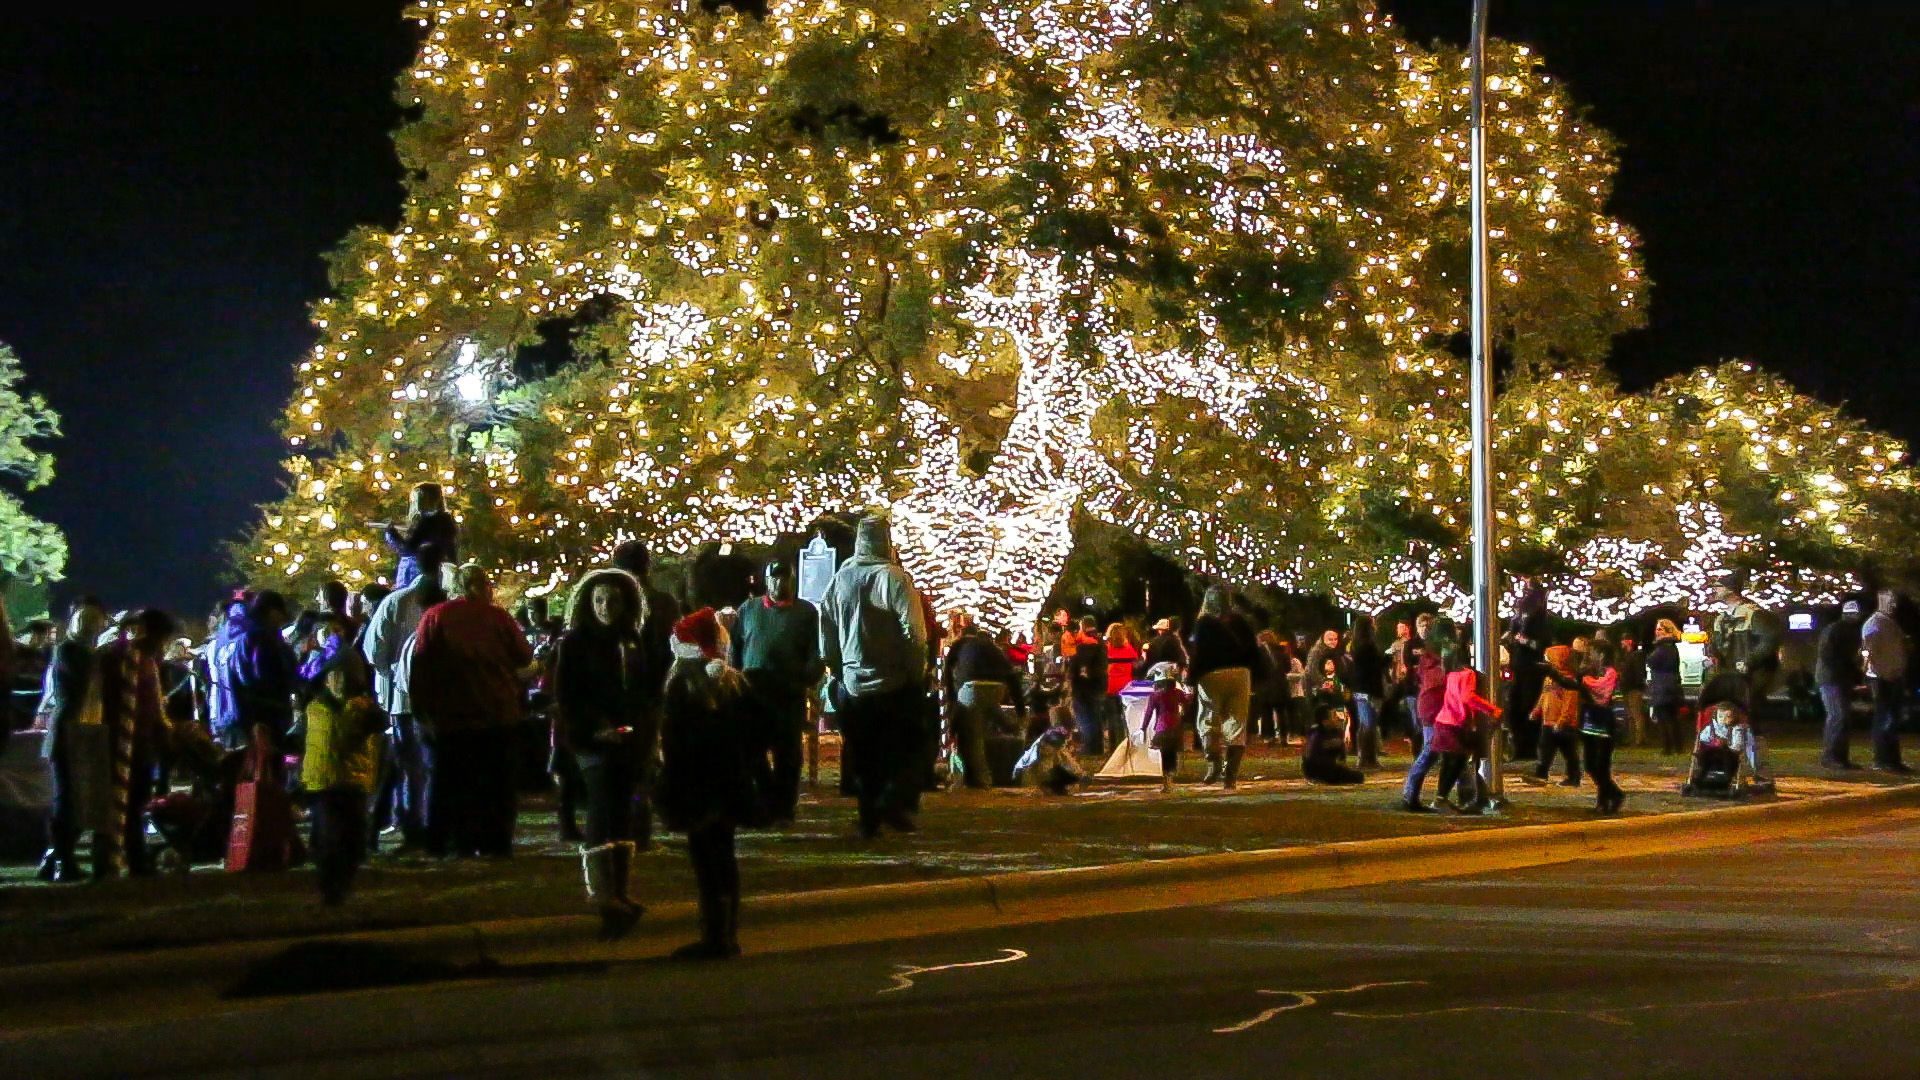 Last year, nearly 2,000 attended the annual Holiday Tree Lighting.